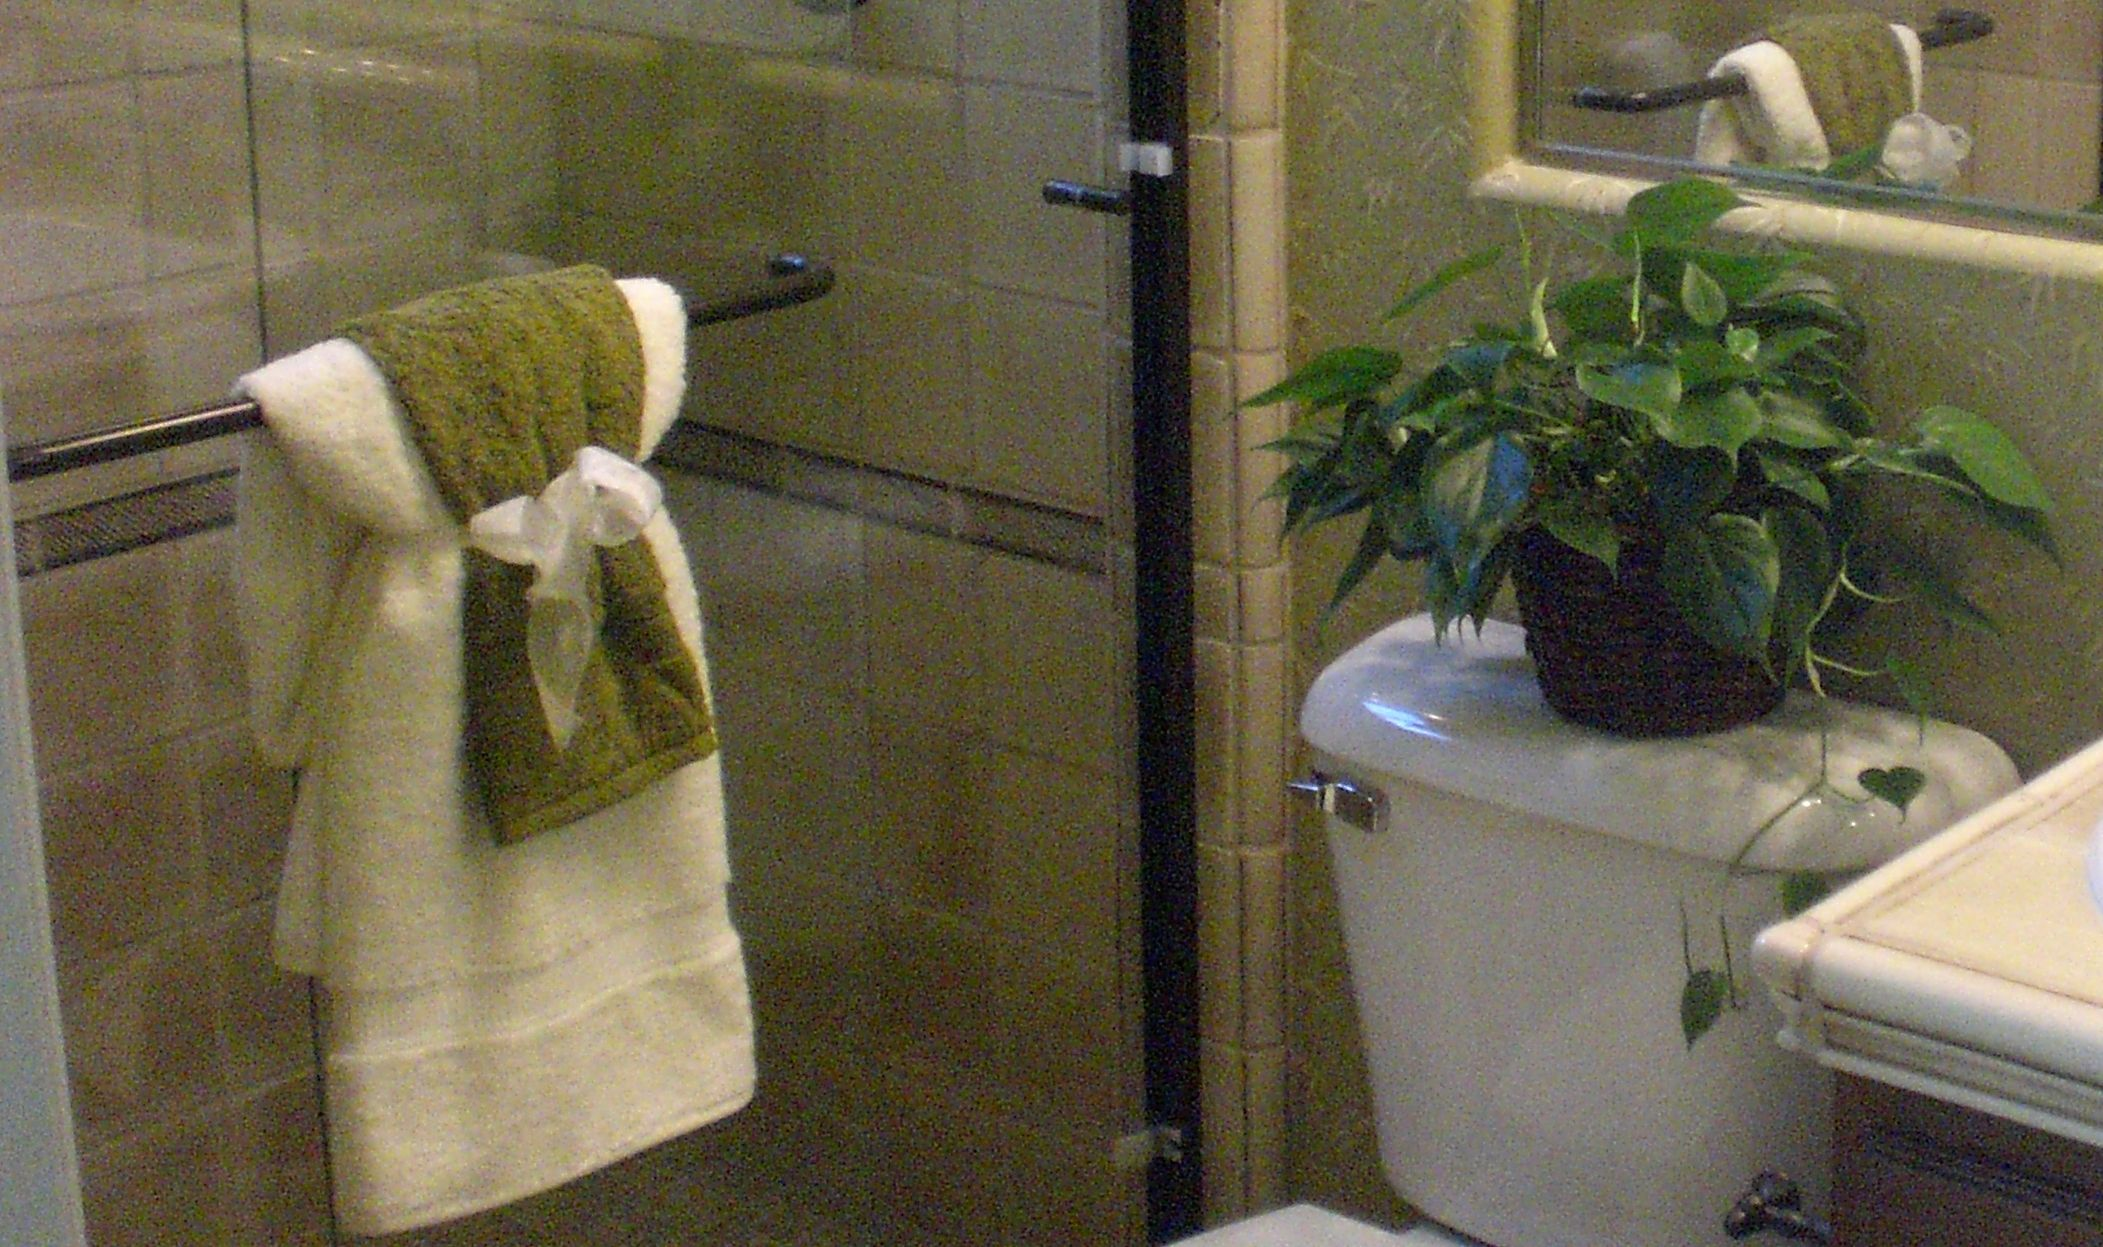 Towel Decorations Everyday Items Towels And Bathroom - Colorful bath towels for small bathroom ideas